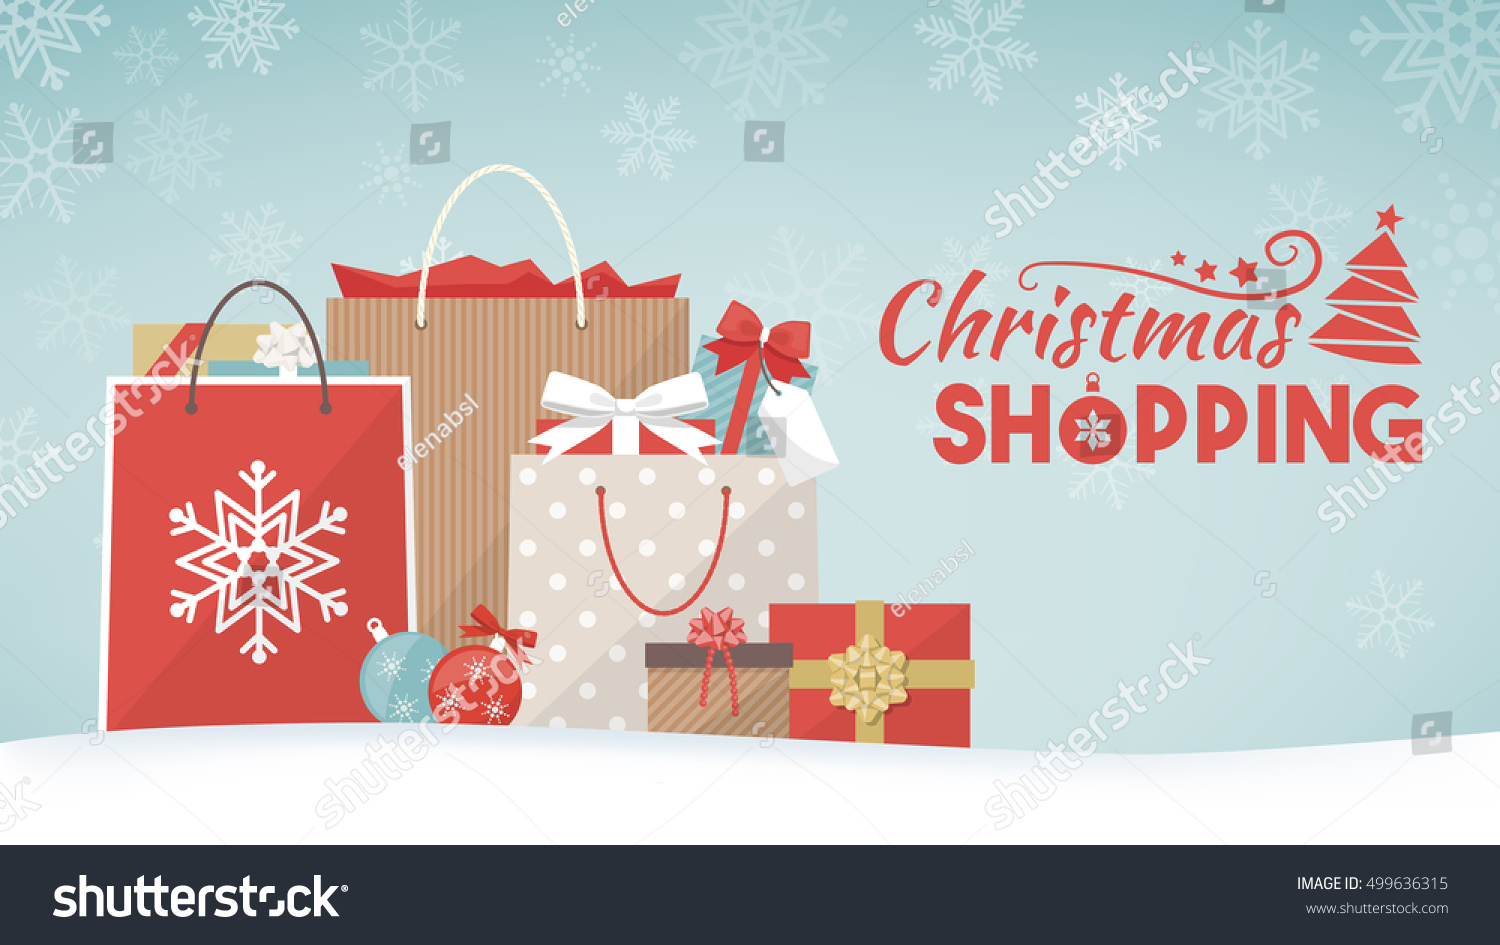 Colorful Christmas Gifts Shopping Bags Decorations Stock ...